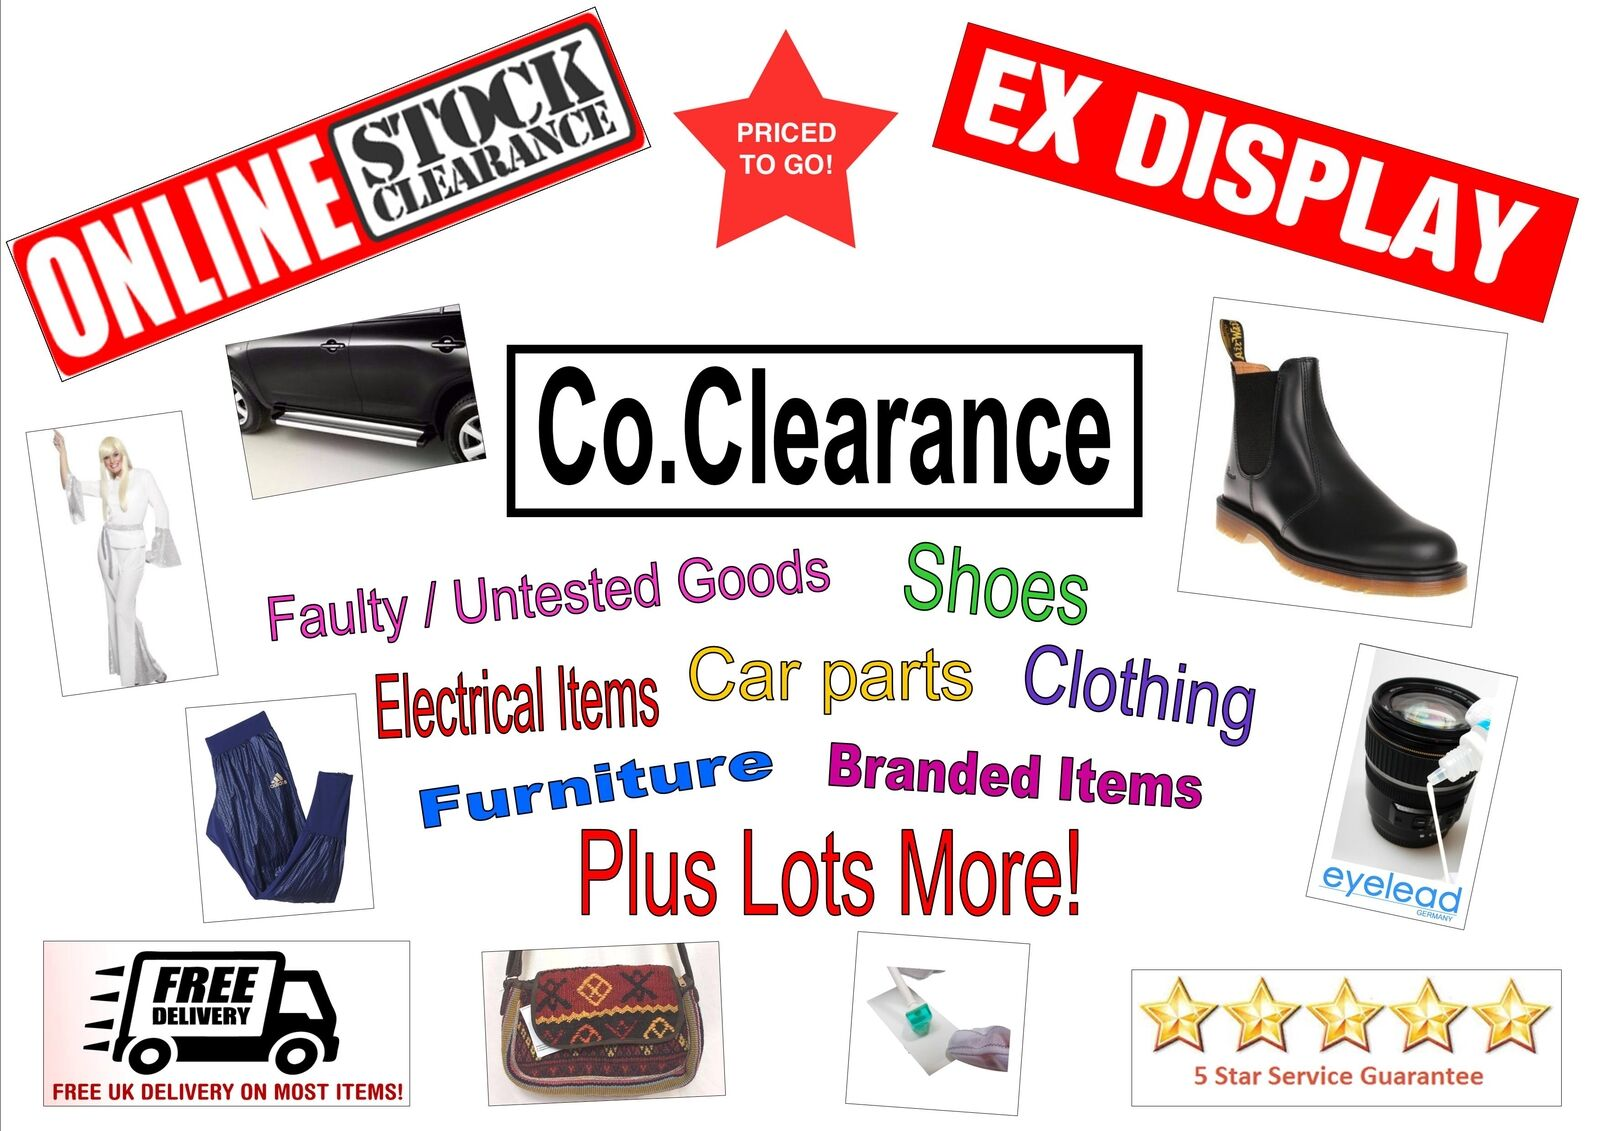 Co.Clearance